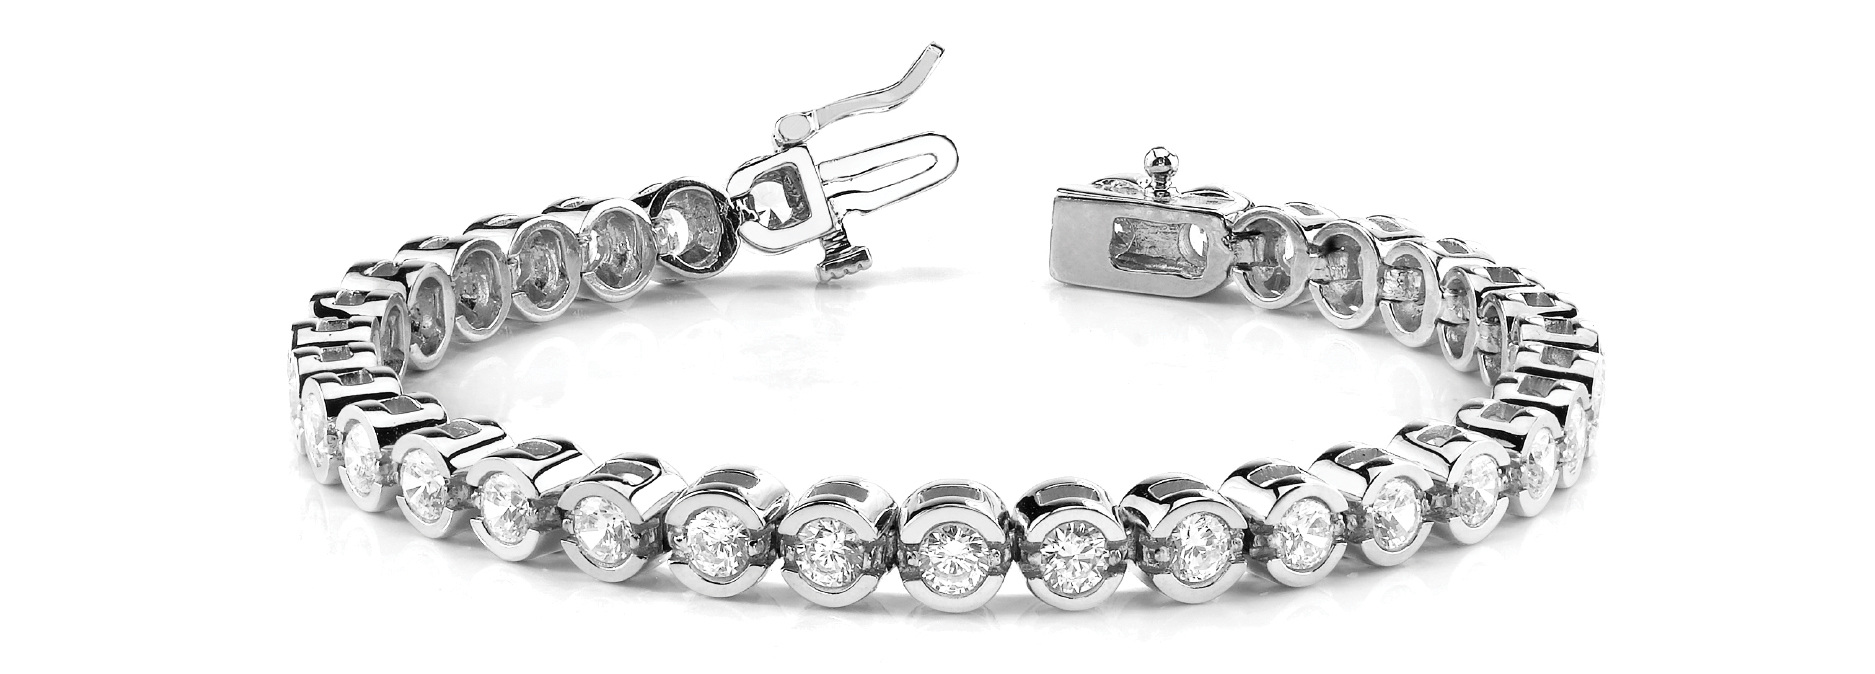 3.75 Carat Round Diamond Square Platinum Tennis Bracelet